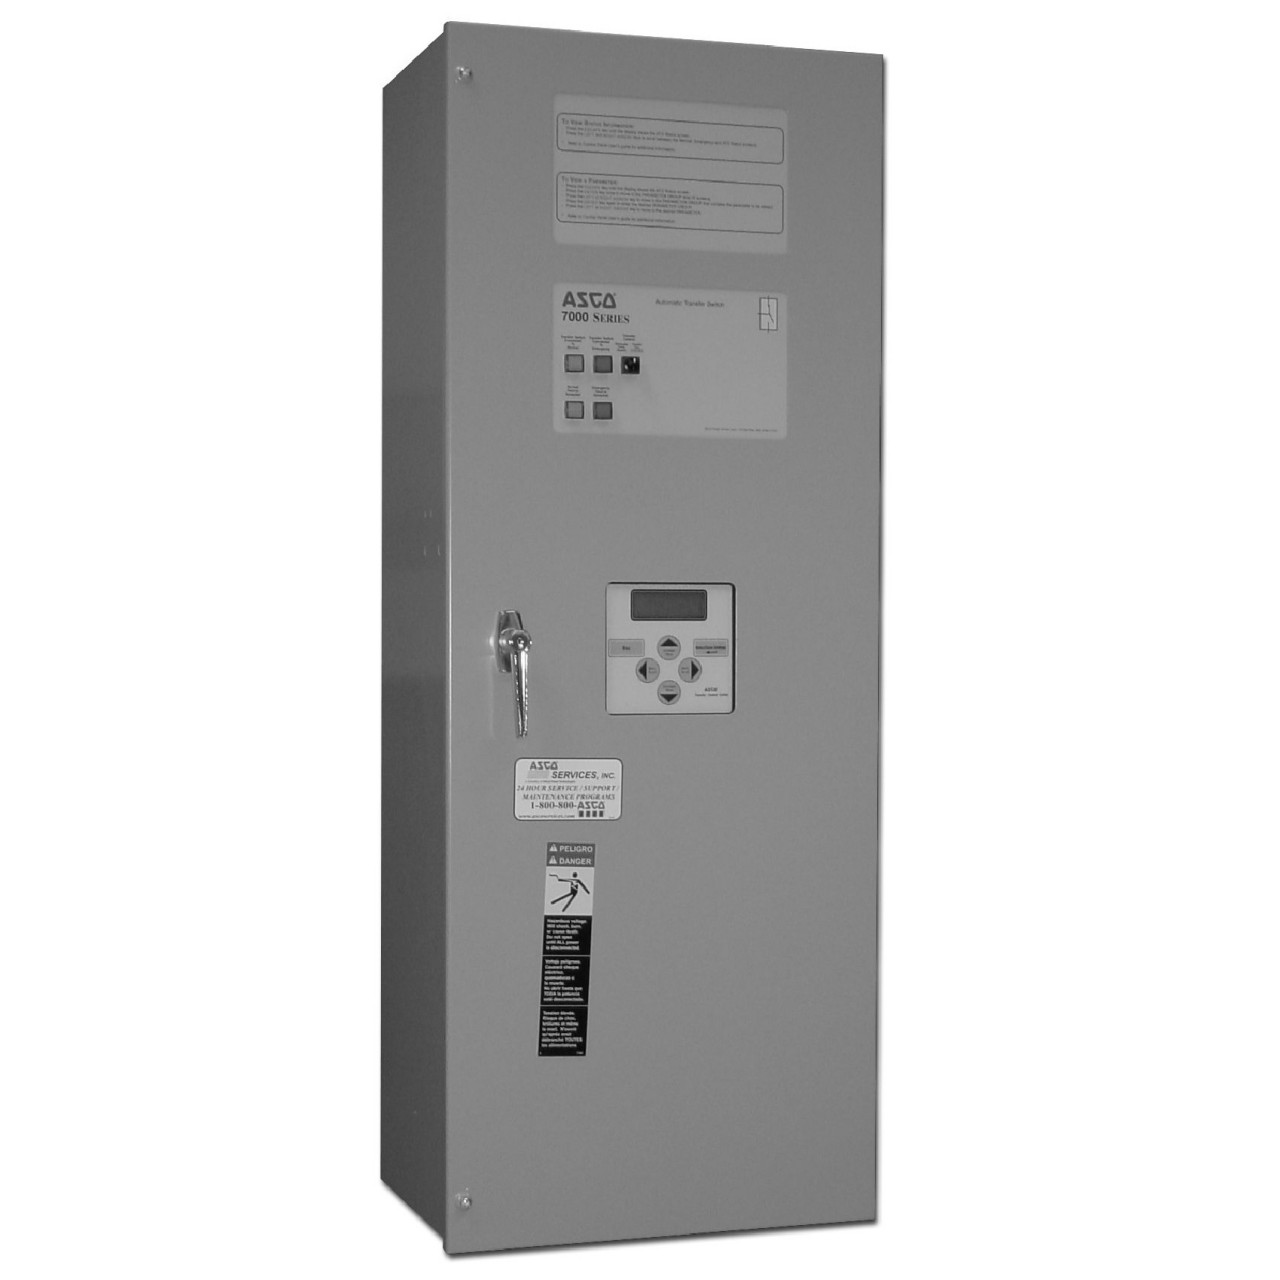 Asco 7000 Manual Transfer Switch (3Ph, 200A)